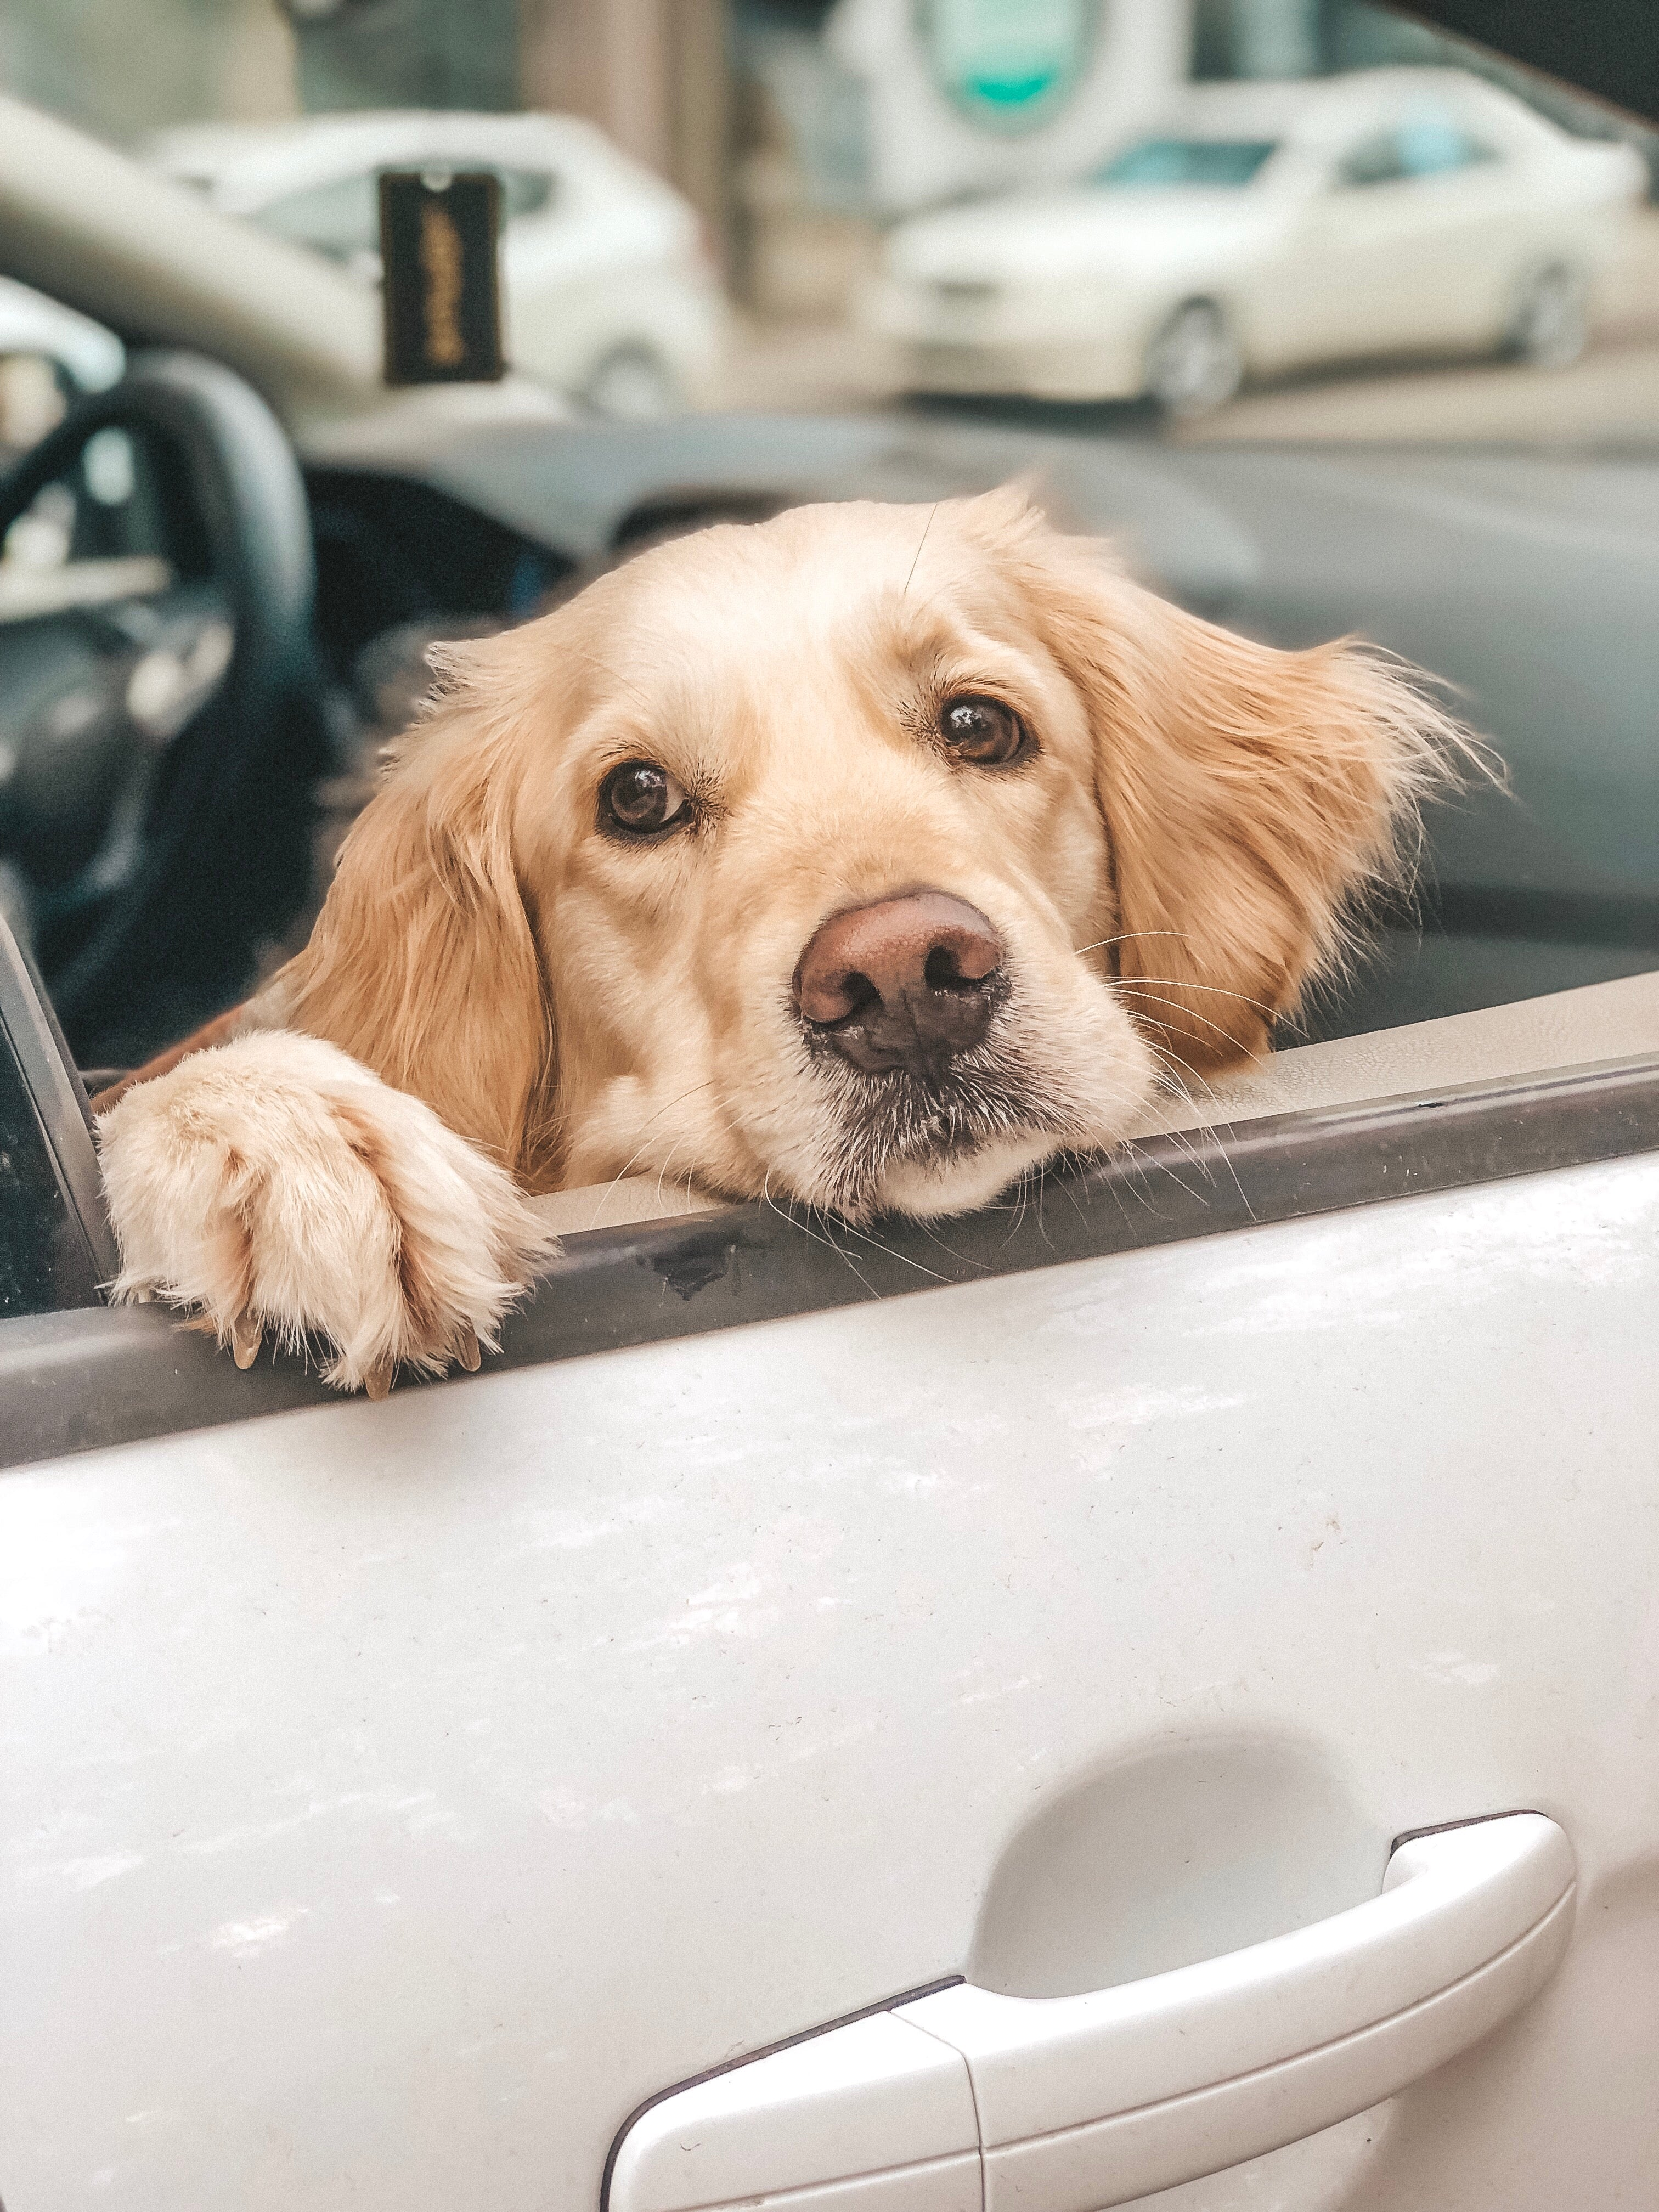 What You Should Know About Leaving Your Dog In The Car